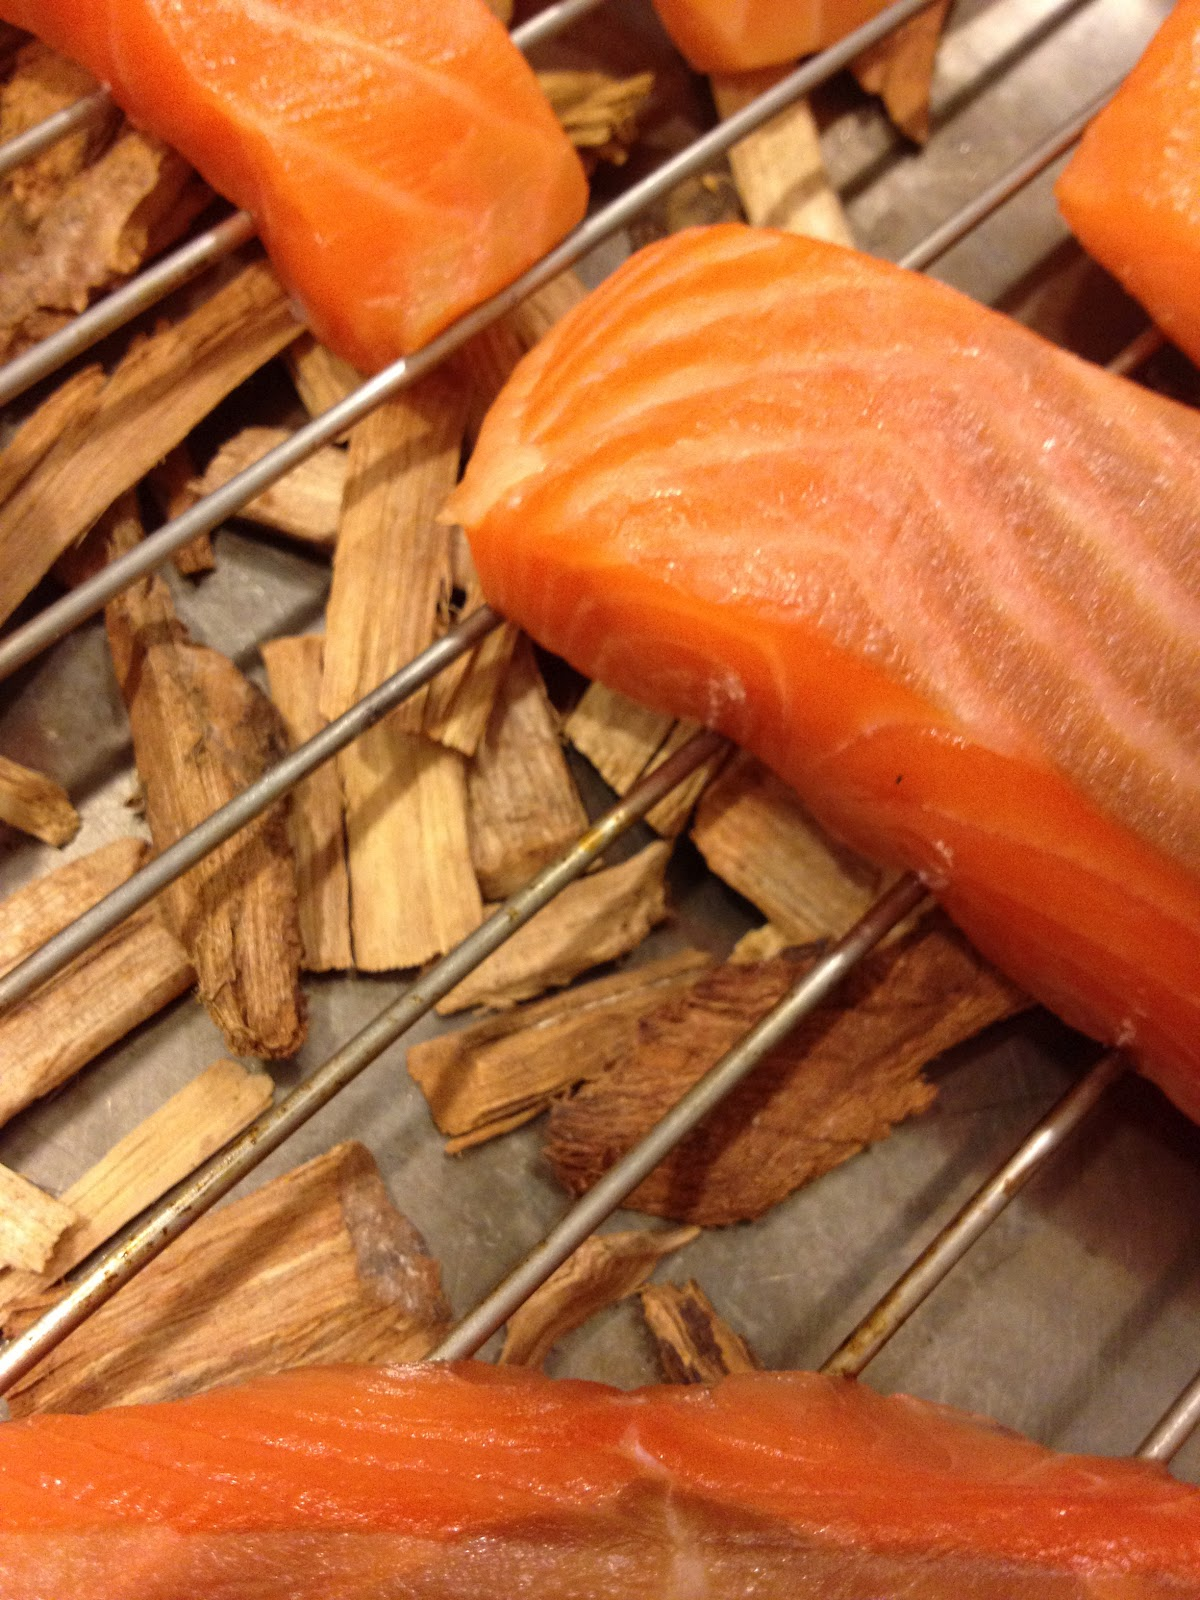 Best Wood Chips Smoking Salmon : Wood chips that give the smoke salmon is earthy smoked flavour